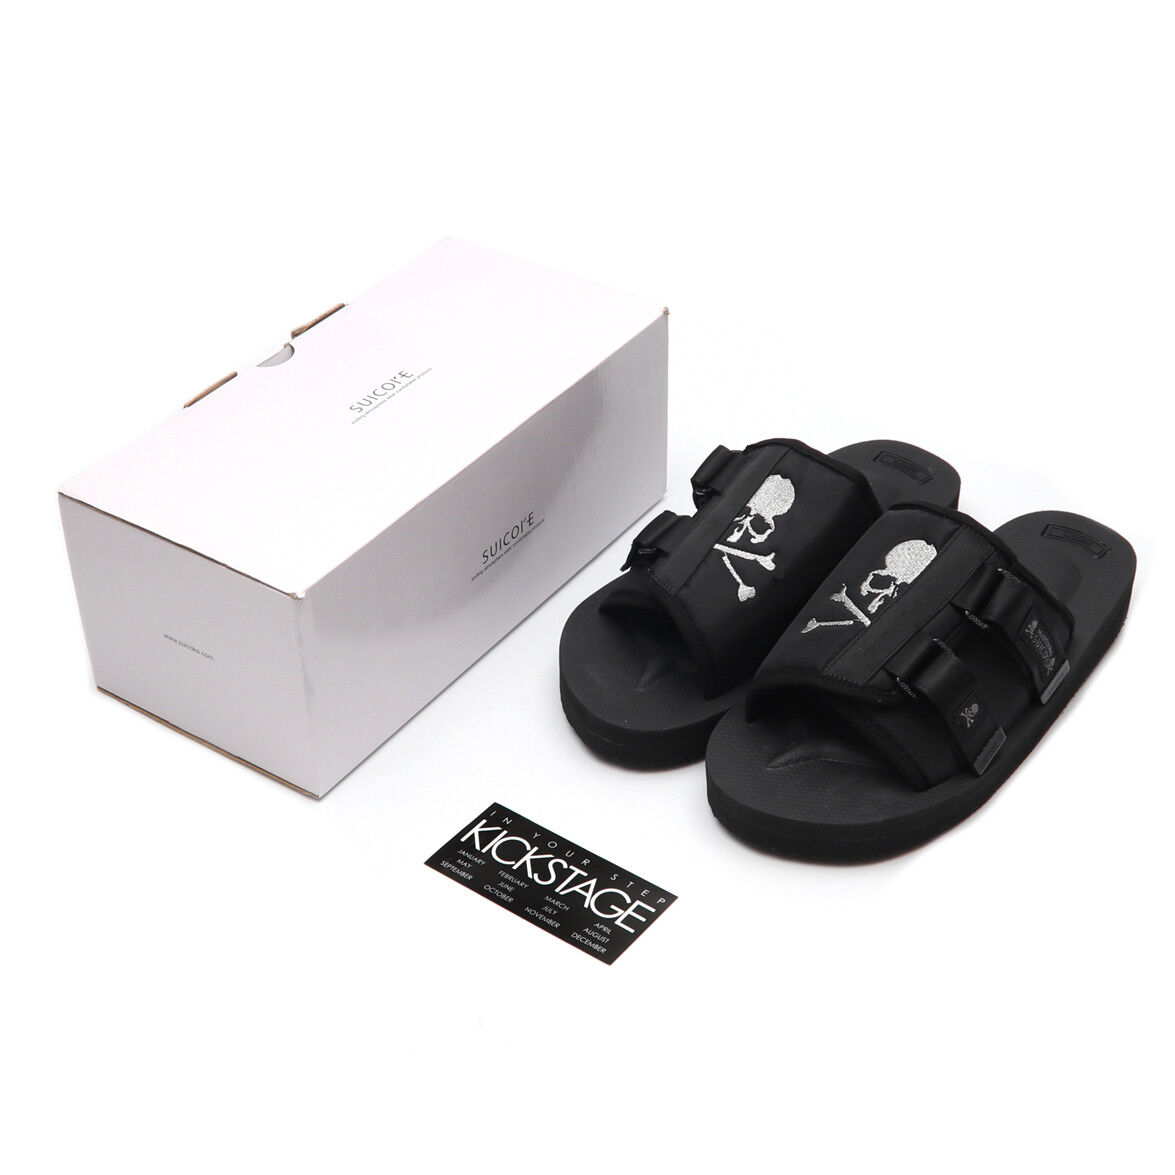 8a6d5e363d5 Mastermind JAPAN x SUICOKE KAW-VMM-JAPAN / OG-081VMM-JAPAN Black MMJ Sandals